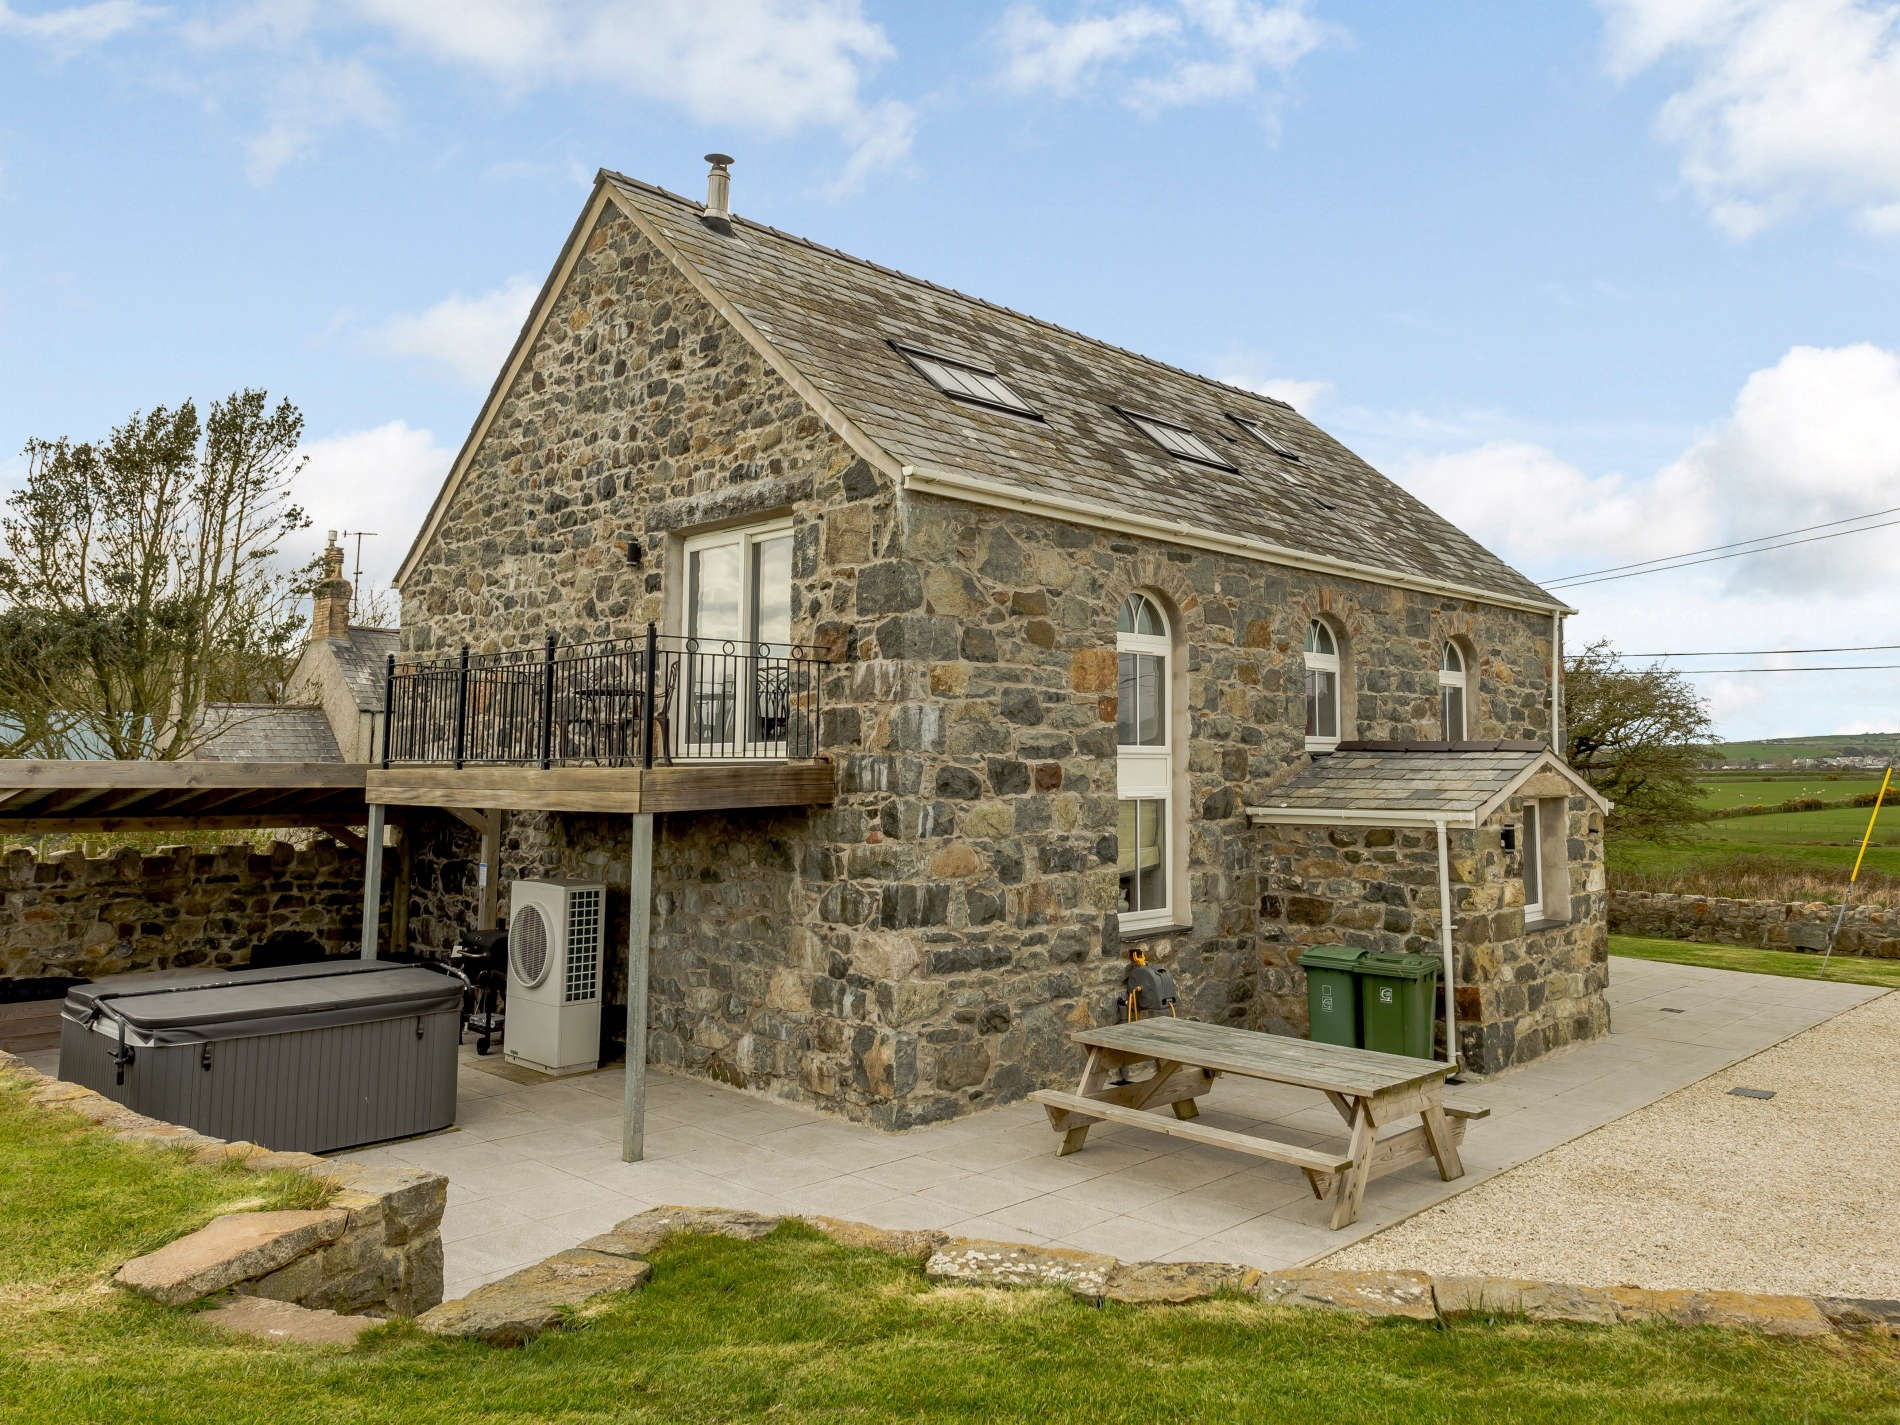 5 Bedroom Cottage in Pwllheli, Snowdonia, North Wales and Cheshire